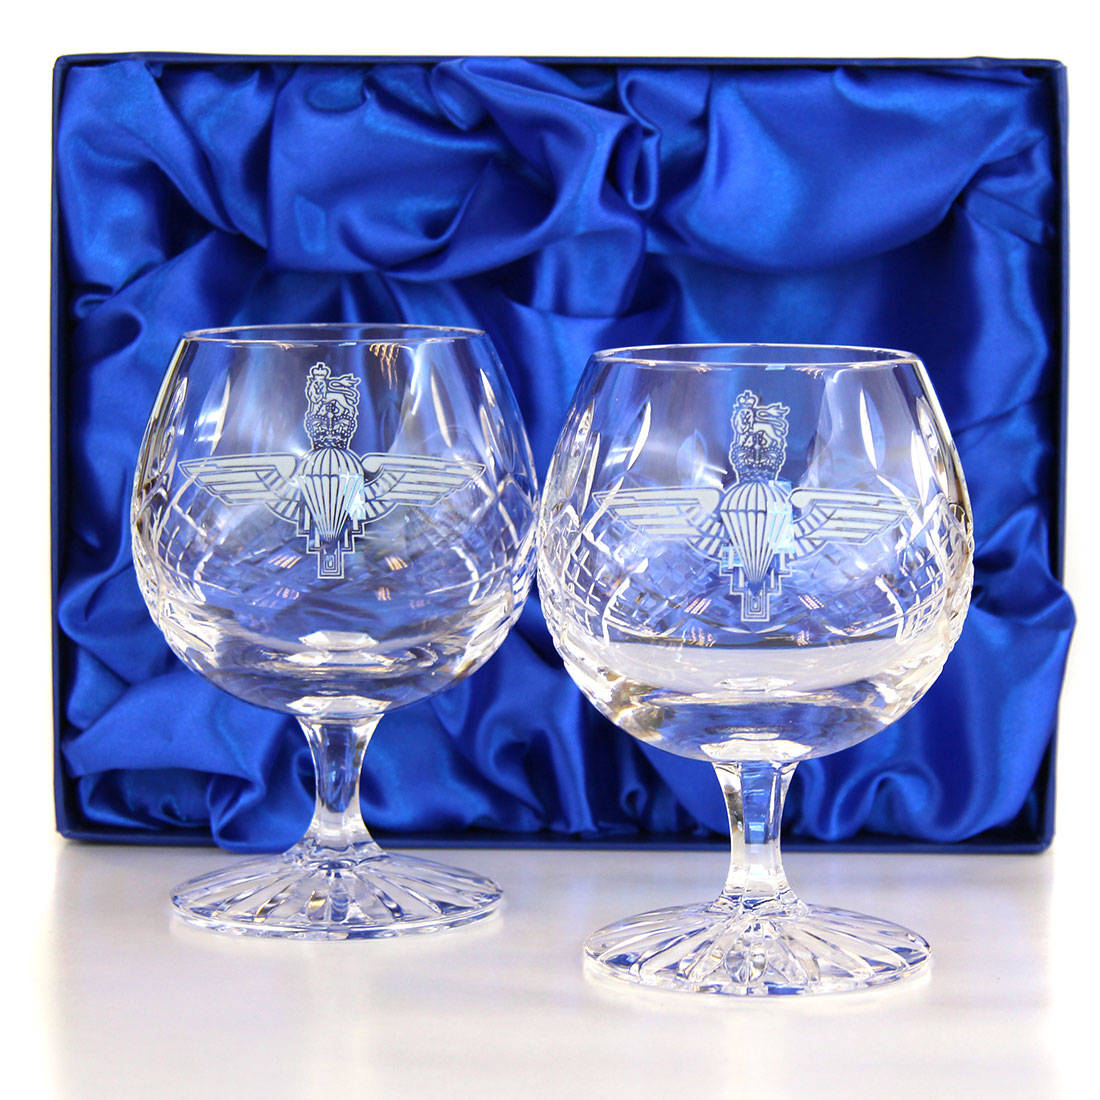 Panel Cut Brandy Goblets (Pair) in Presentation Box